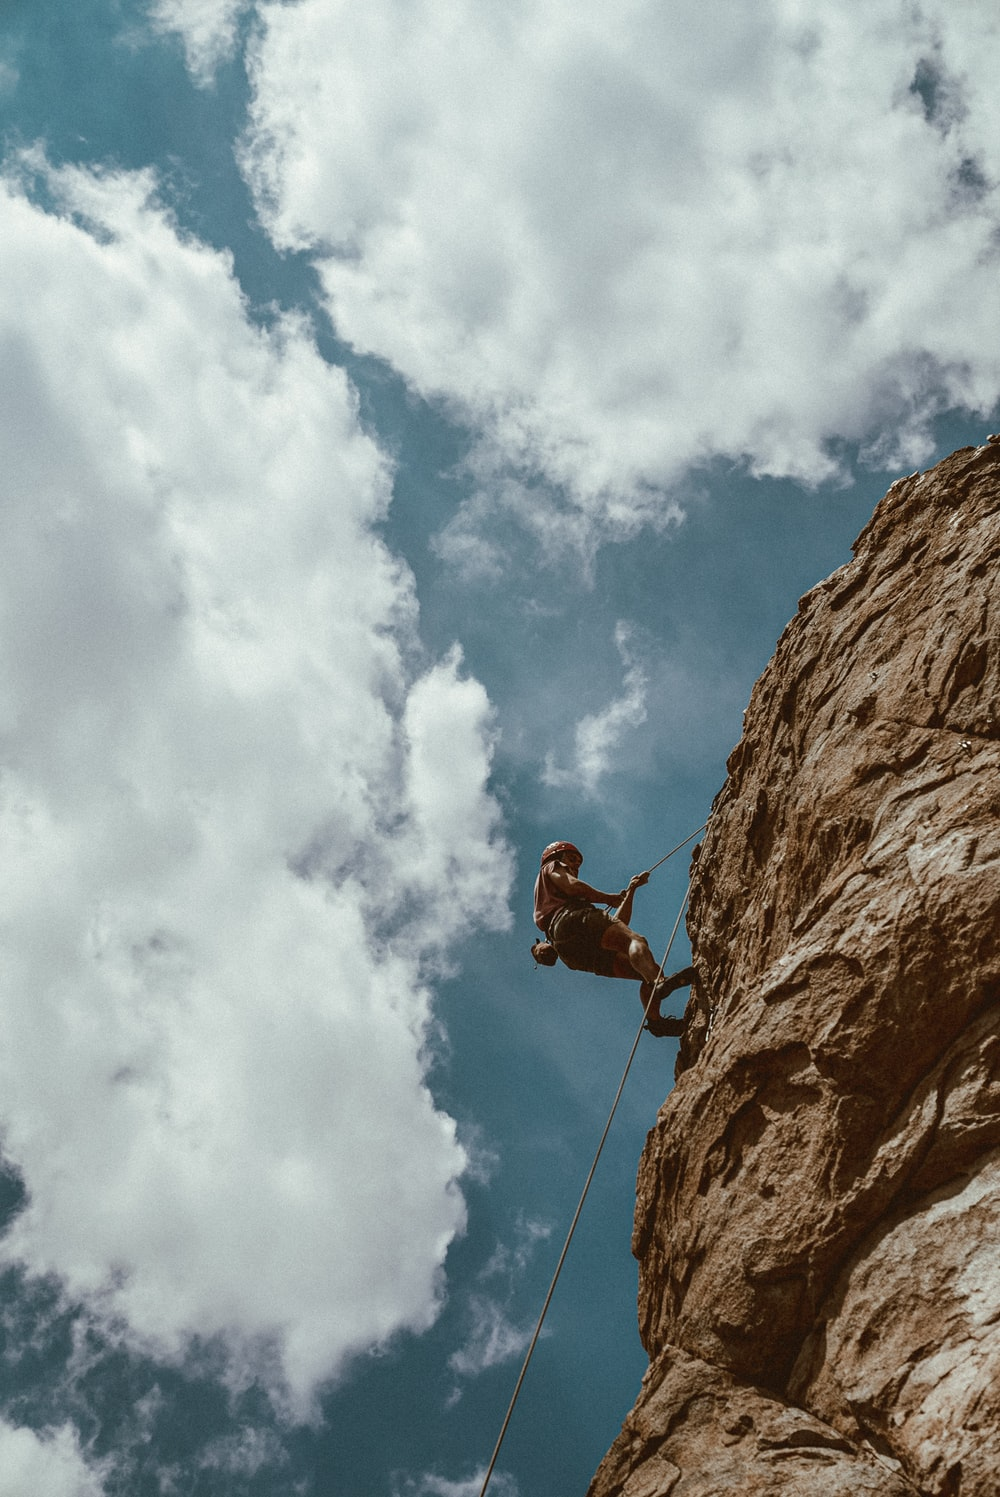 man in red jacket climbing on brown rock mountain under blue and white sunny cloudy sky